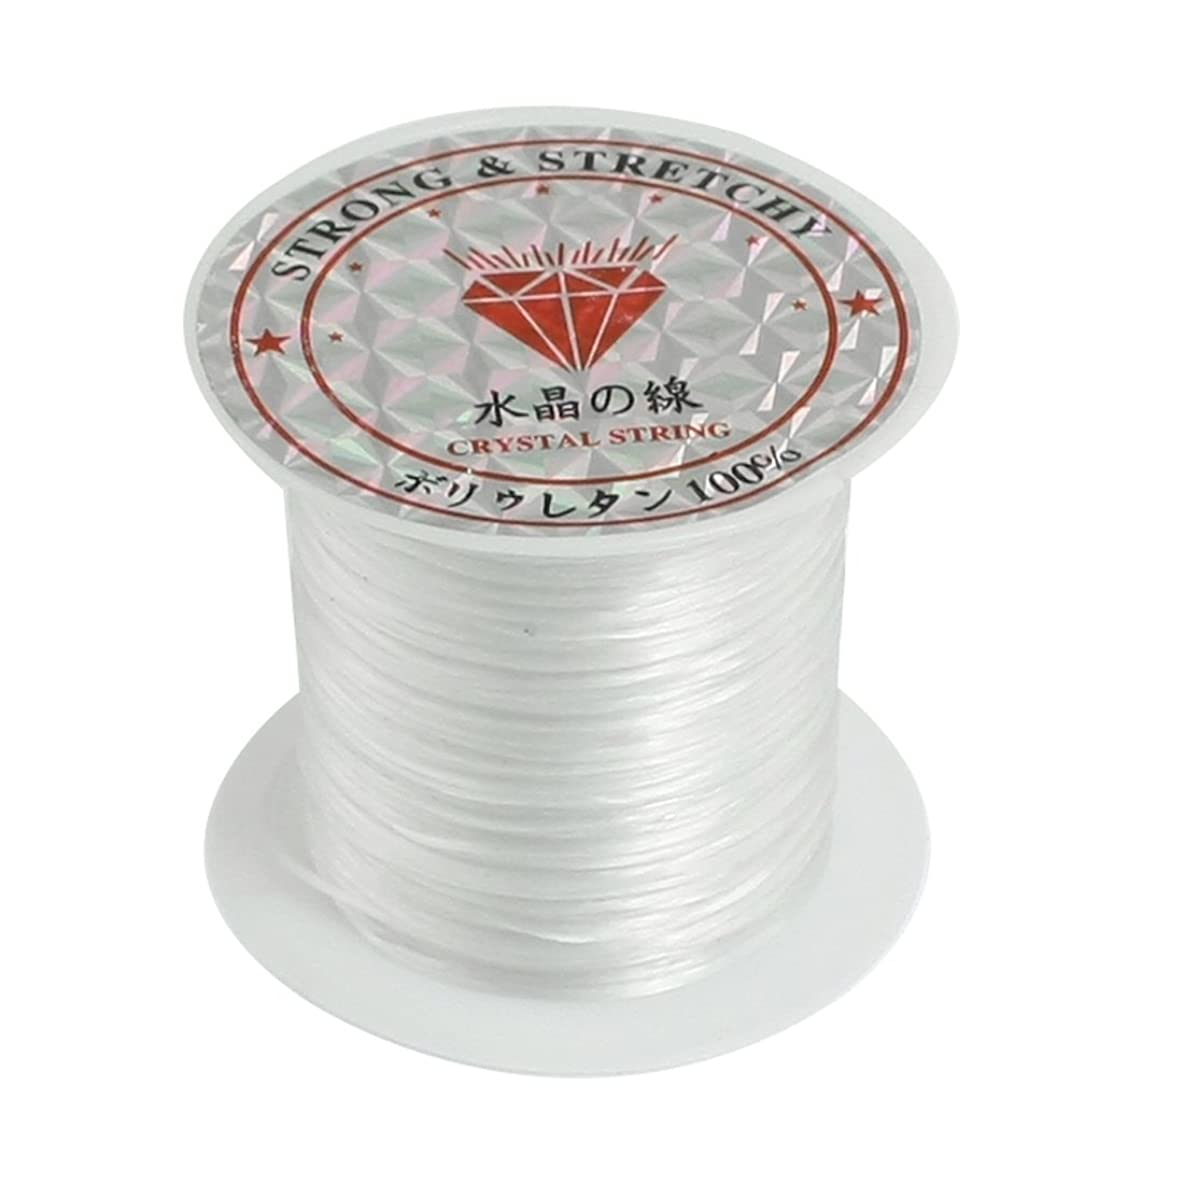 Crystal Thread,Vayne 2Rolls Bead Craft Crystal, Stretchy String/Thread,White Elastic Round Line Bobbin Beading Jewelry Making Bracelet Crystal String Cord Dia 0.5-0.6mm